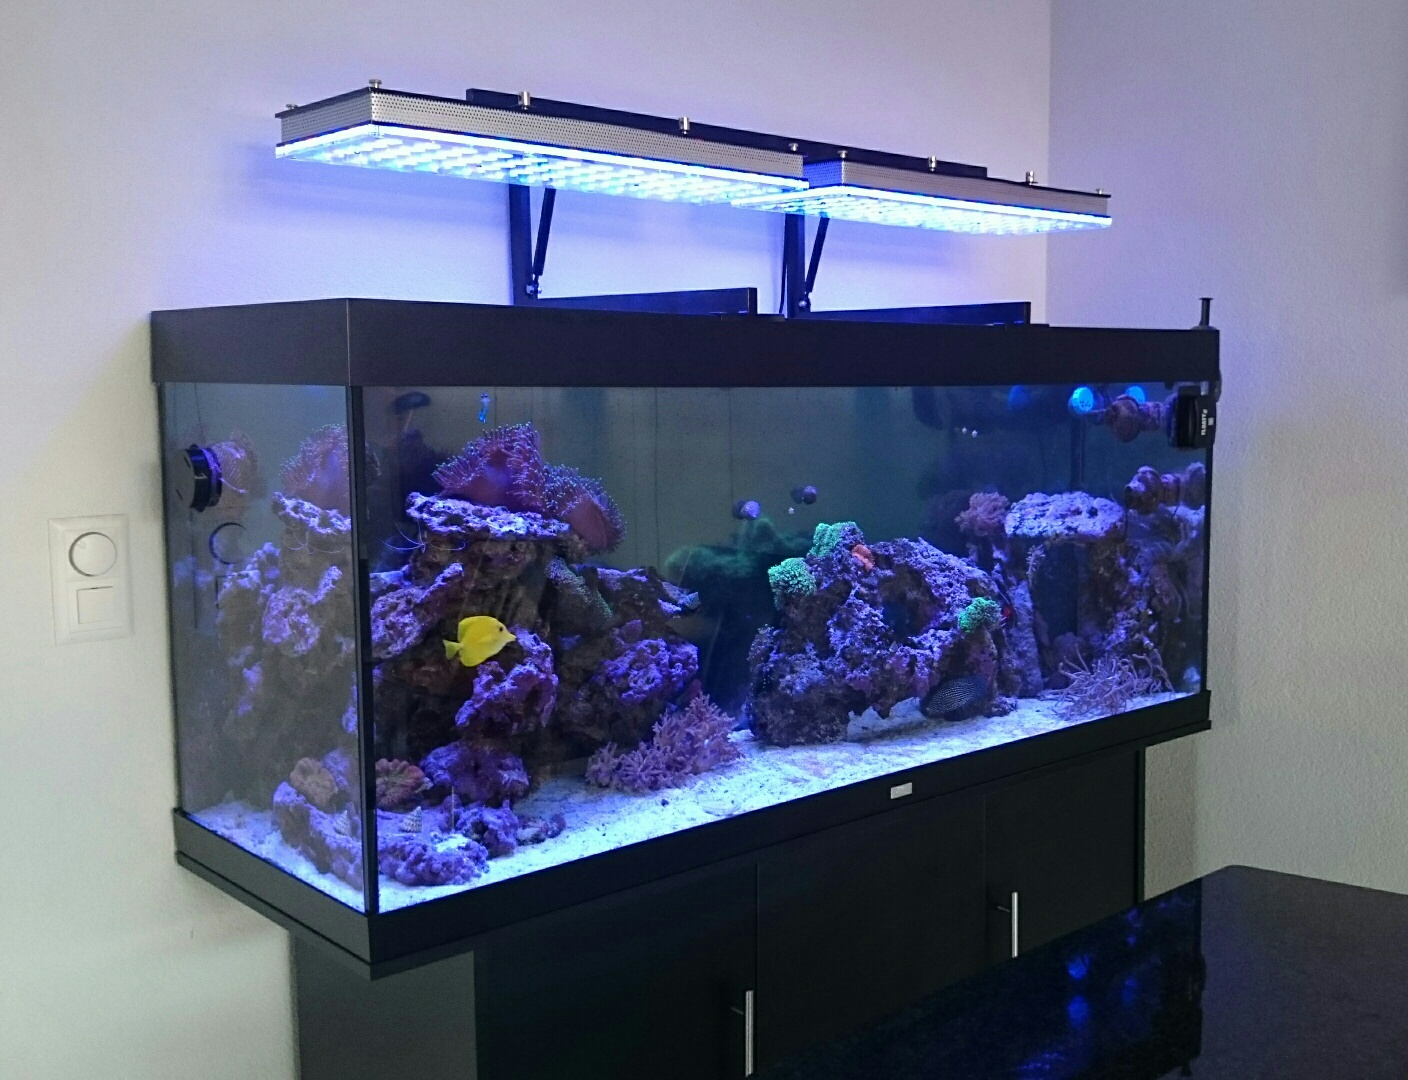 mounting brackets mounting arm hang kit for the atlantik led lighting aquarium led lighting orphek. Black Bedroom Furniture Sets. Home Design Ideas